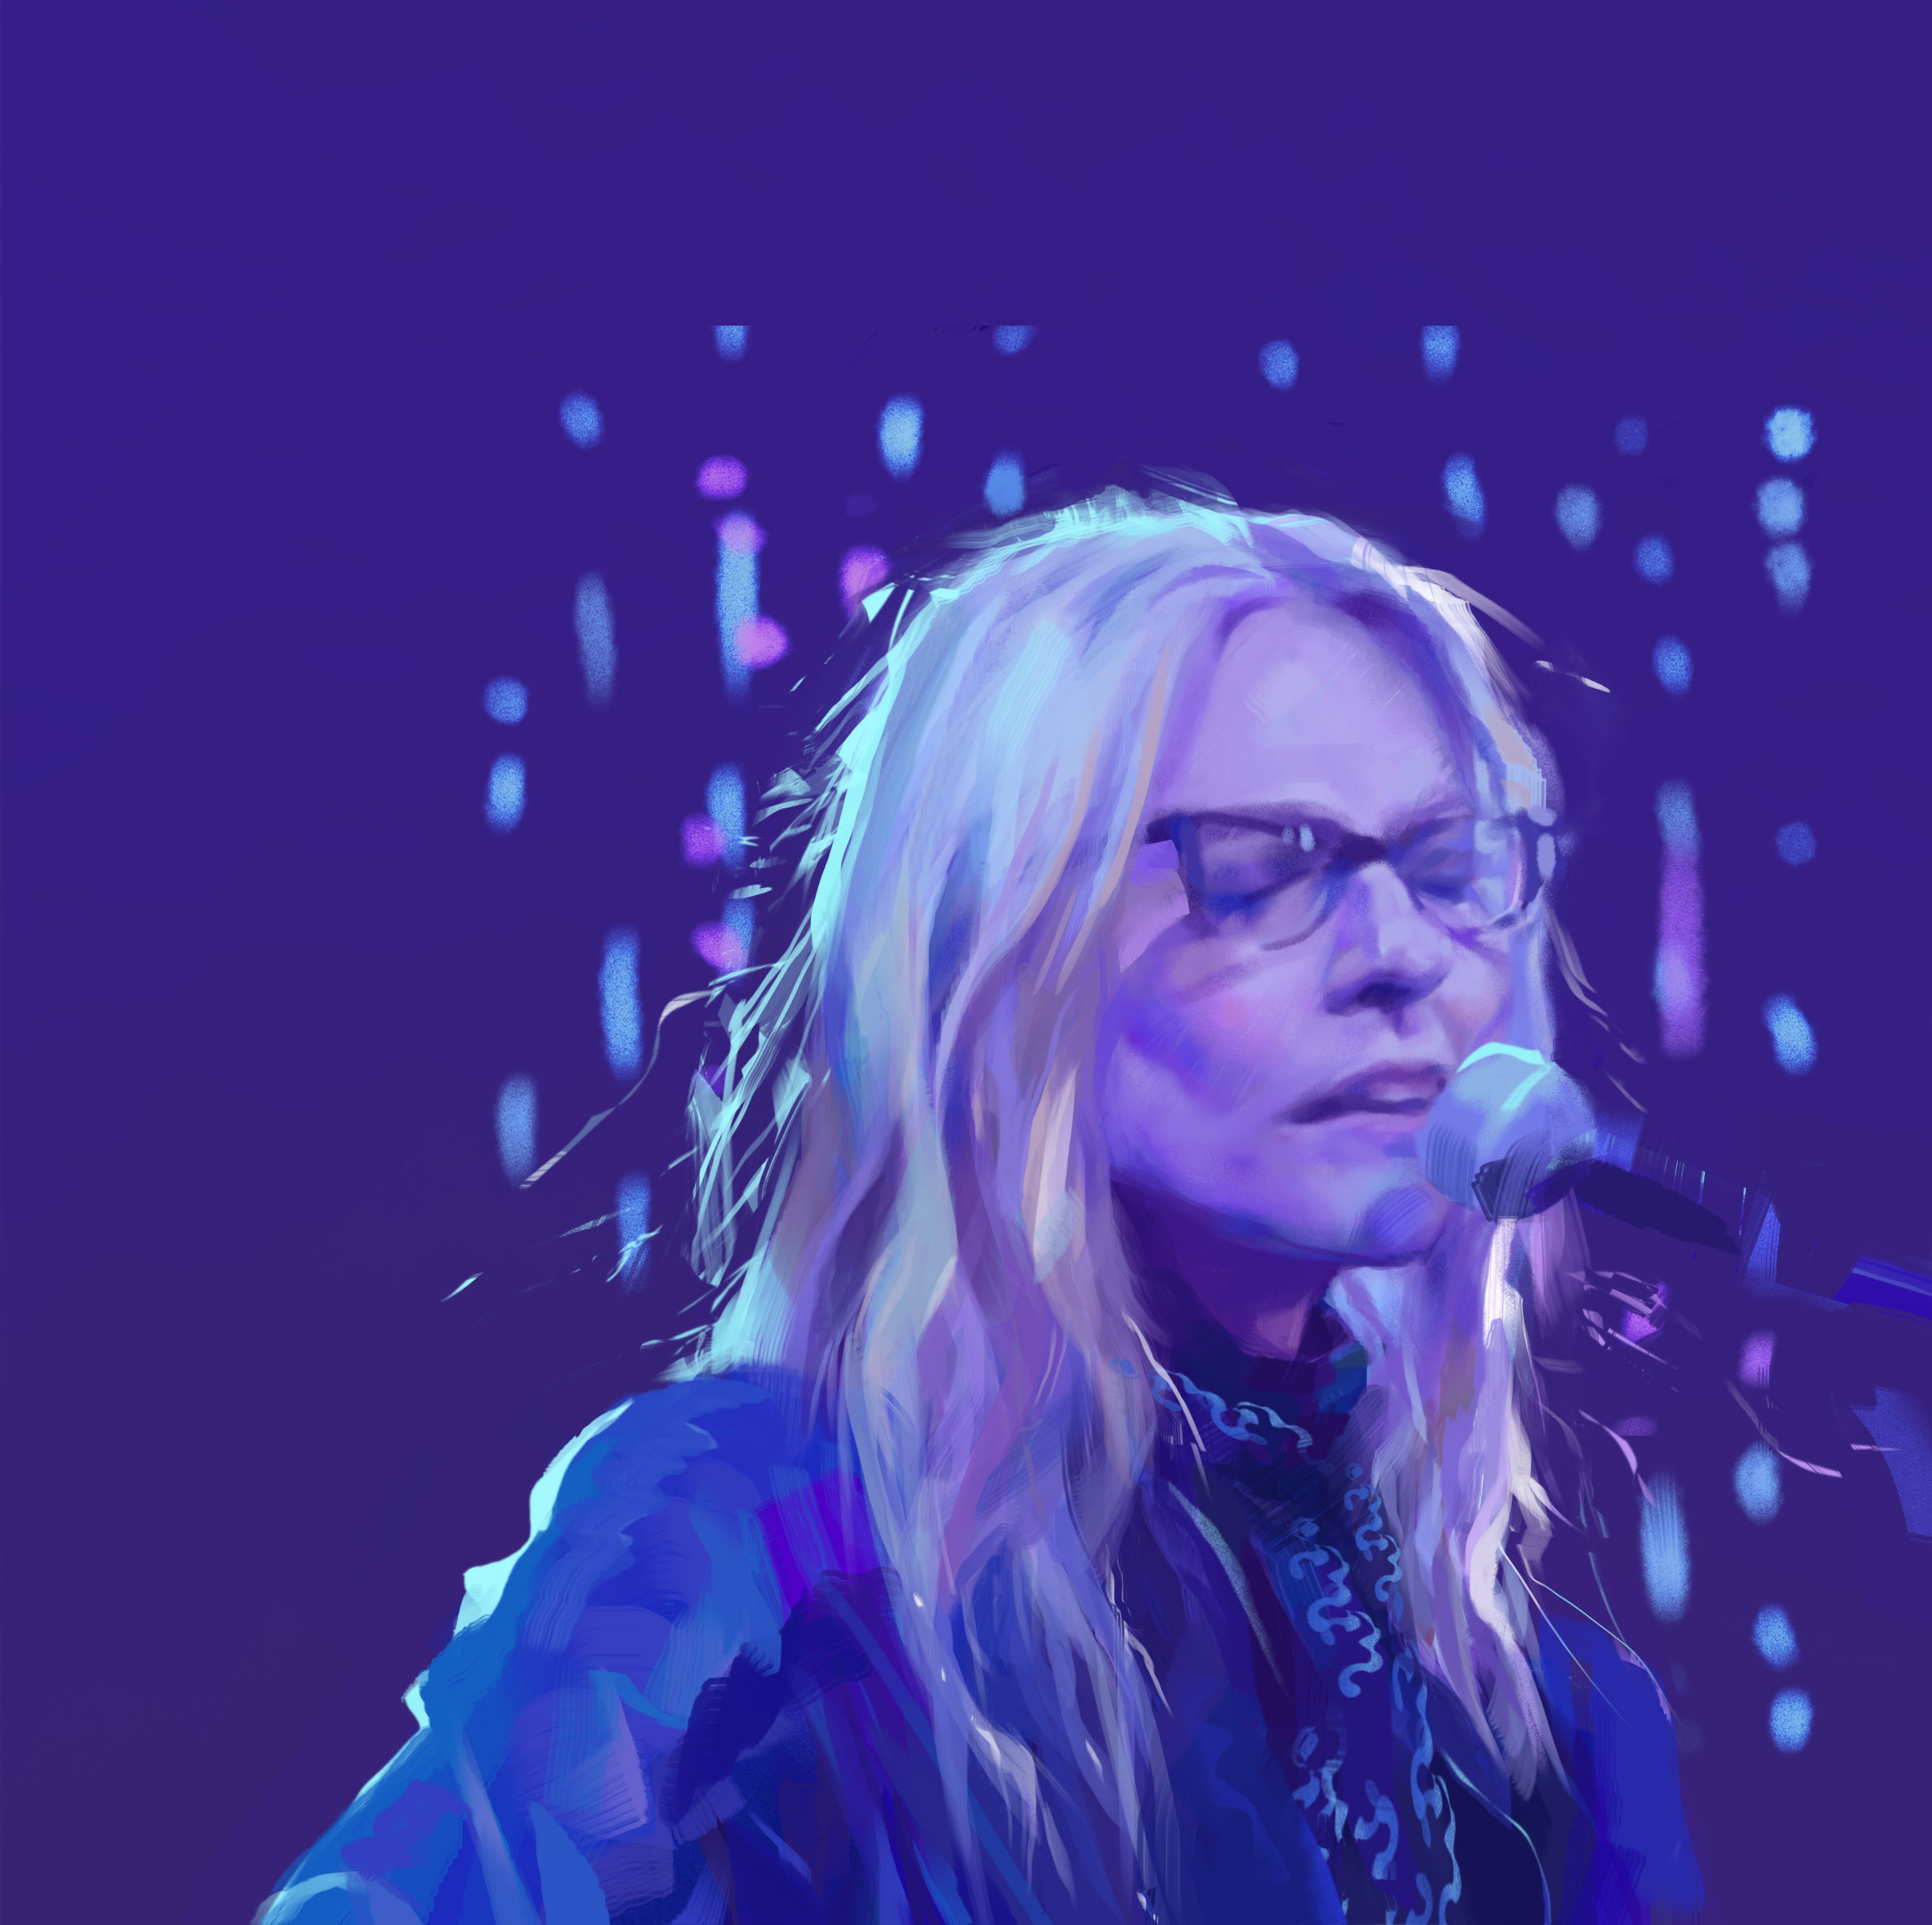 CarolynArcabascio_AimeeMann_Illustration.jpg